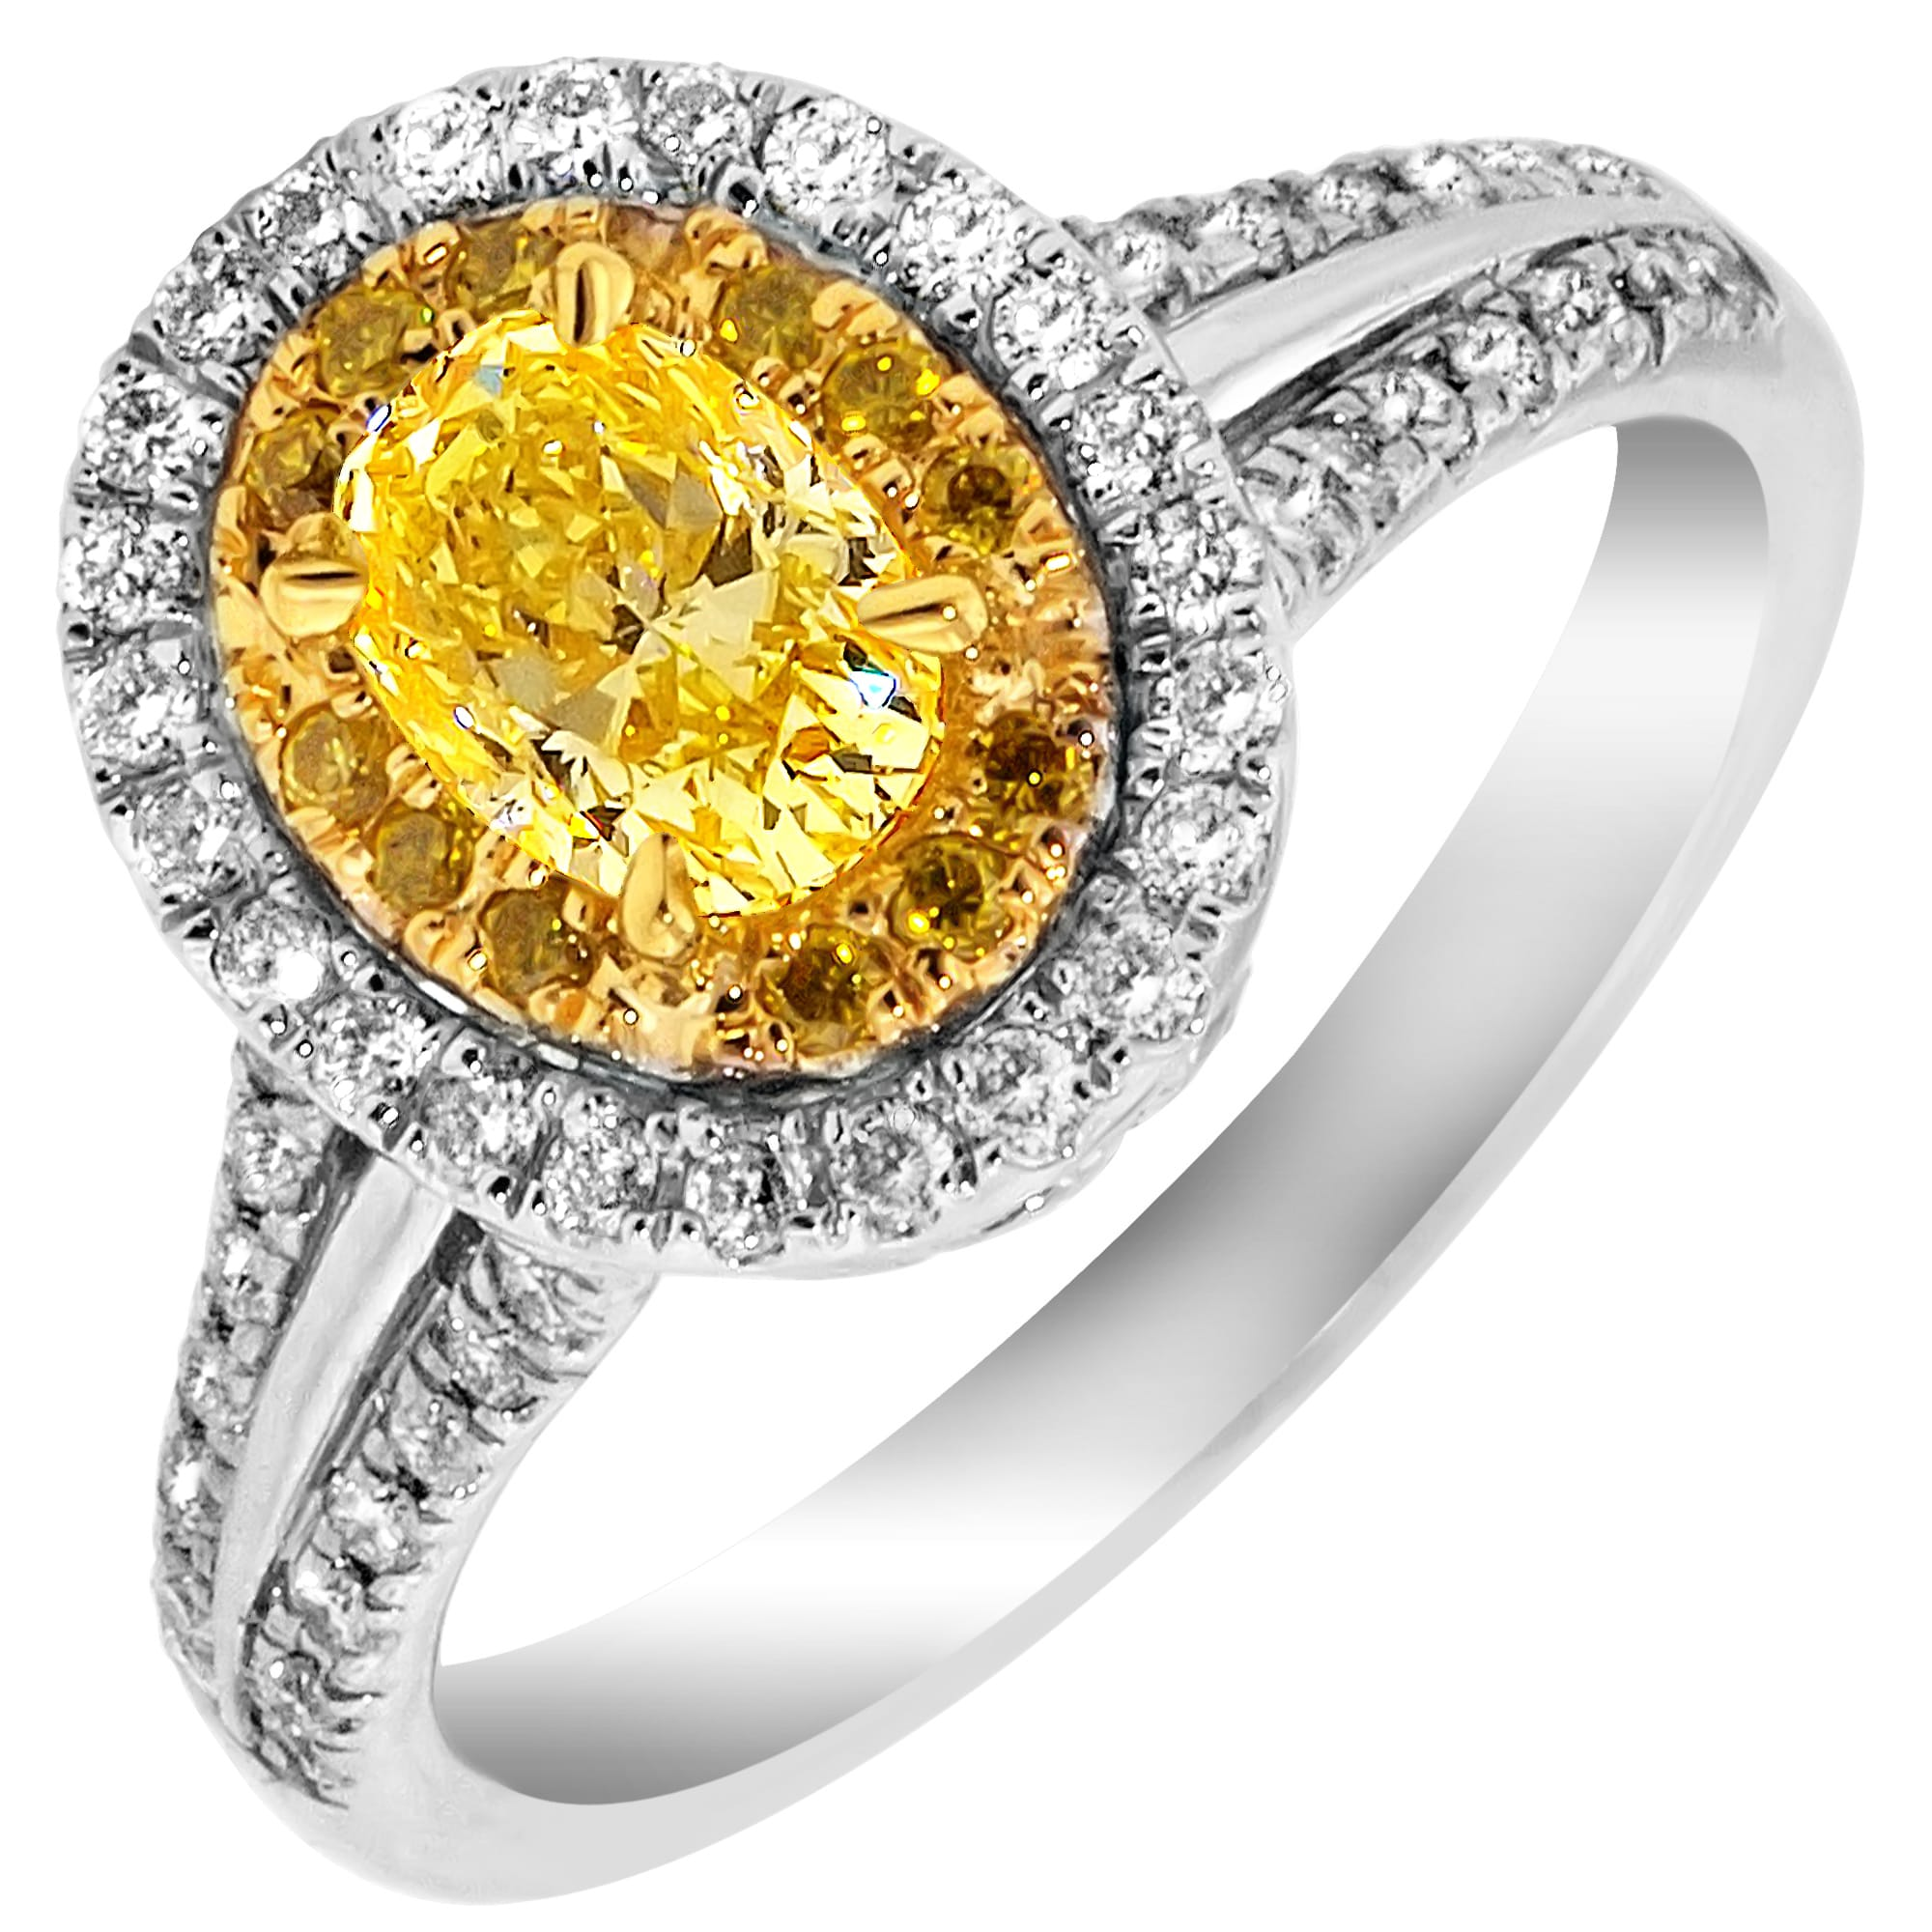 Couture Oval Natural Fancy Intense Yellow Diamond Ring in 18kt White Gold